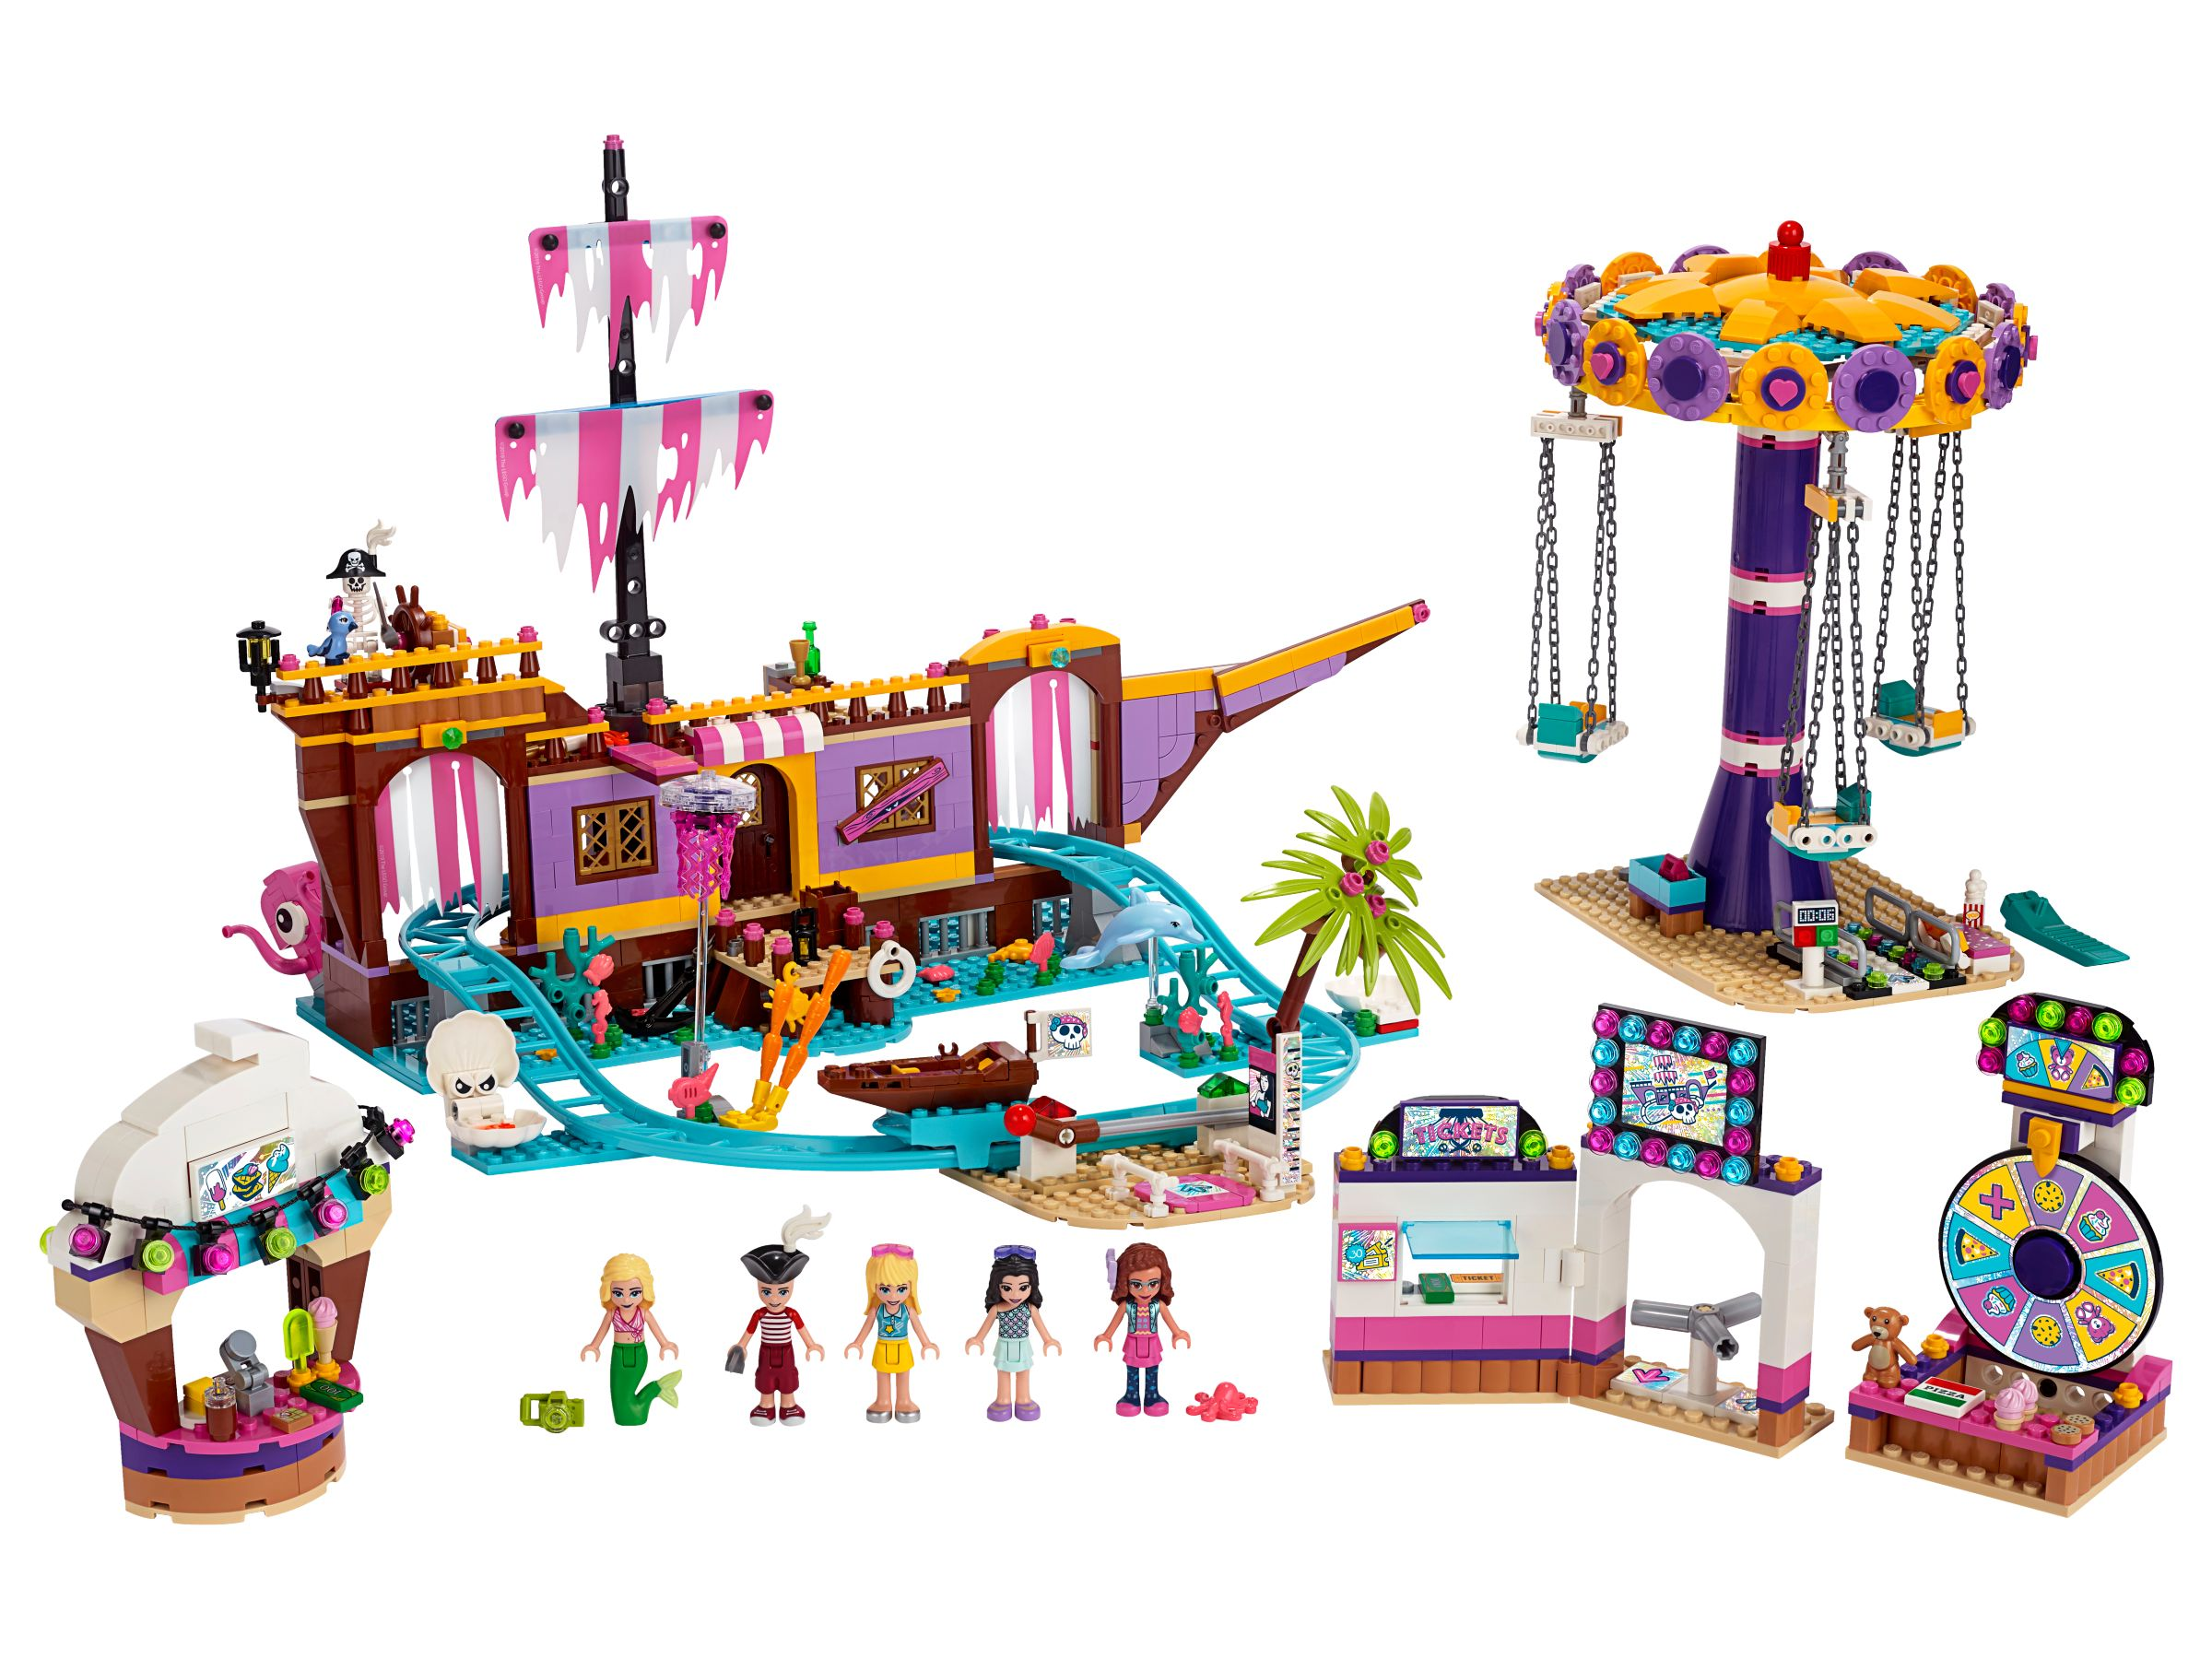 LEGO Friends 41375 Vergnügungspark von Heartlake City LEGO_41375.jpg